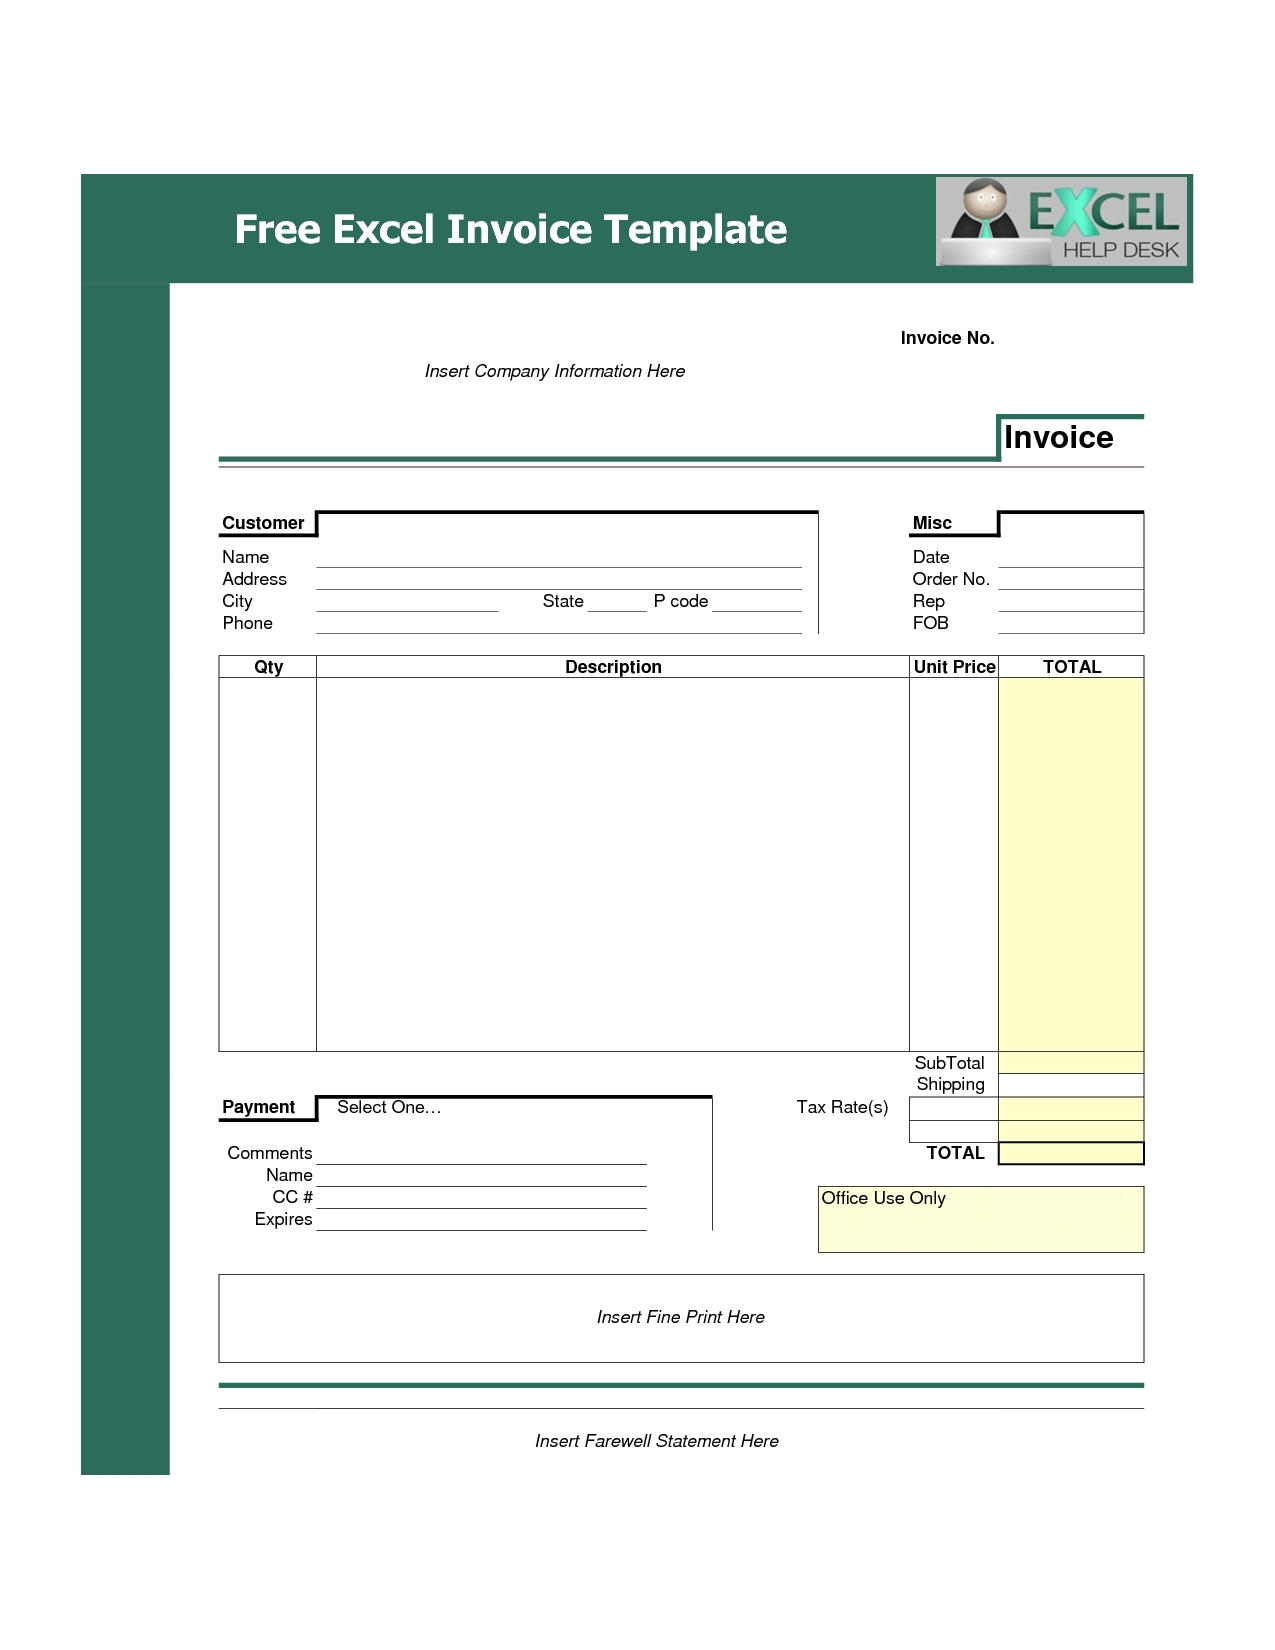 invoice template for excel 2007 invoice template ideas. Black Bedroom Furniture Sets. Home Design Ideas